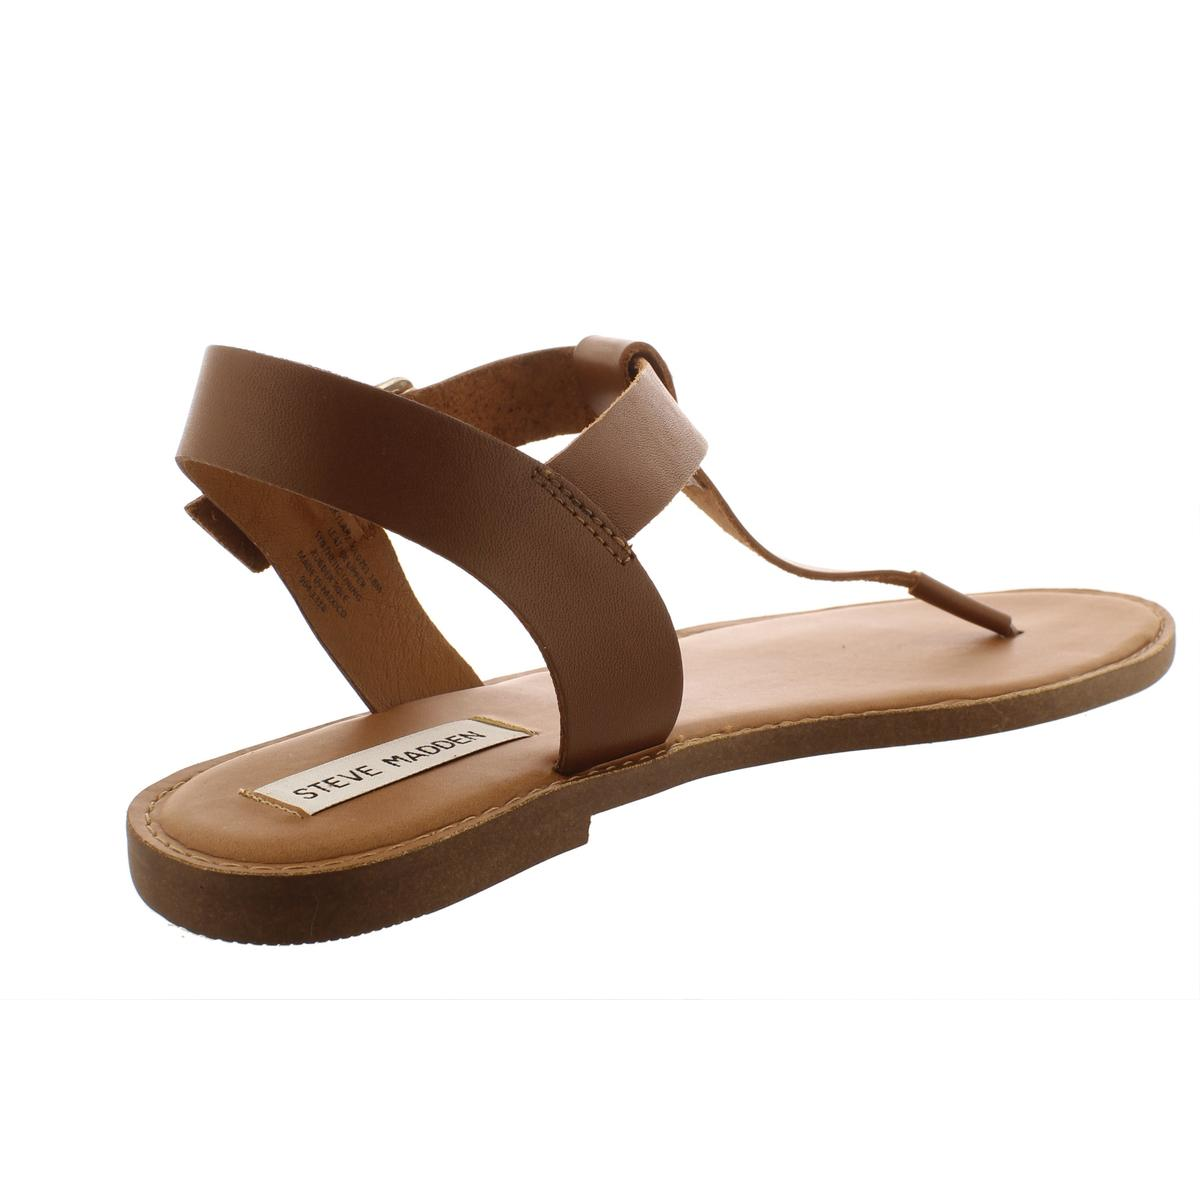 Steve-Madden-Womens-Skylar-Leather-Flats-Thong-T-Strap-Sandals-Shoes-BHFO-6308 thumbnail 4